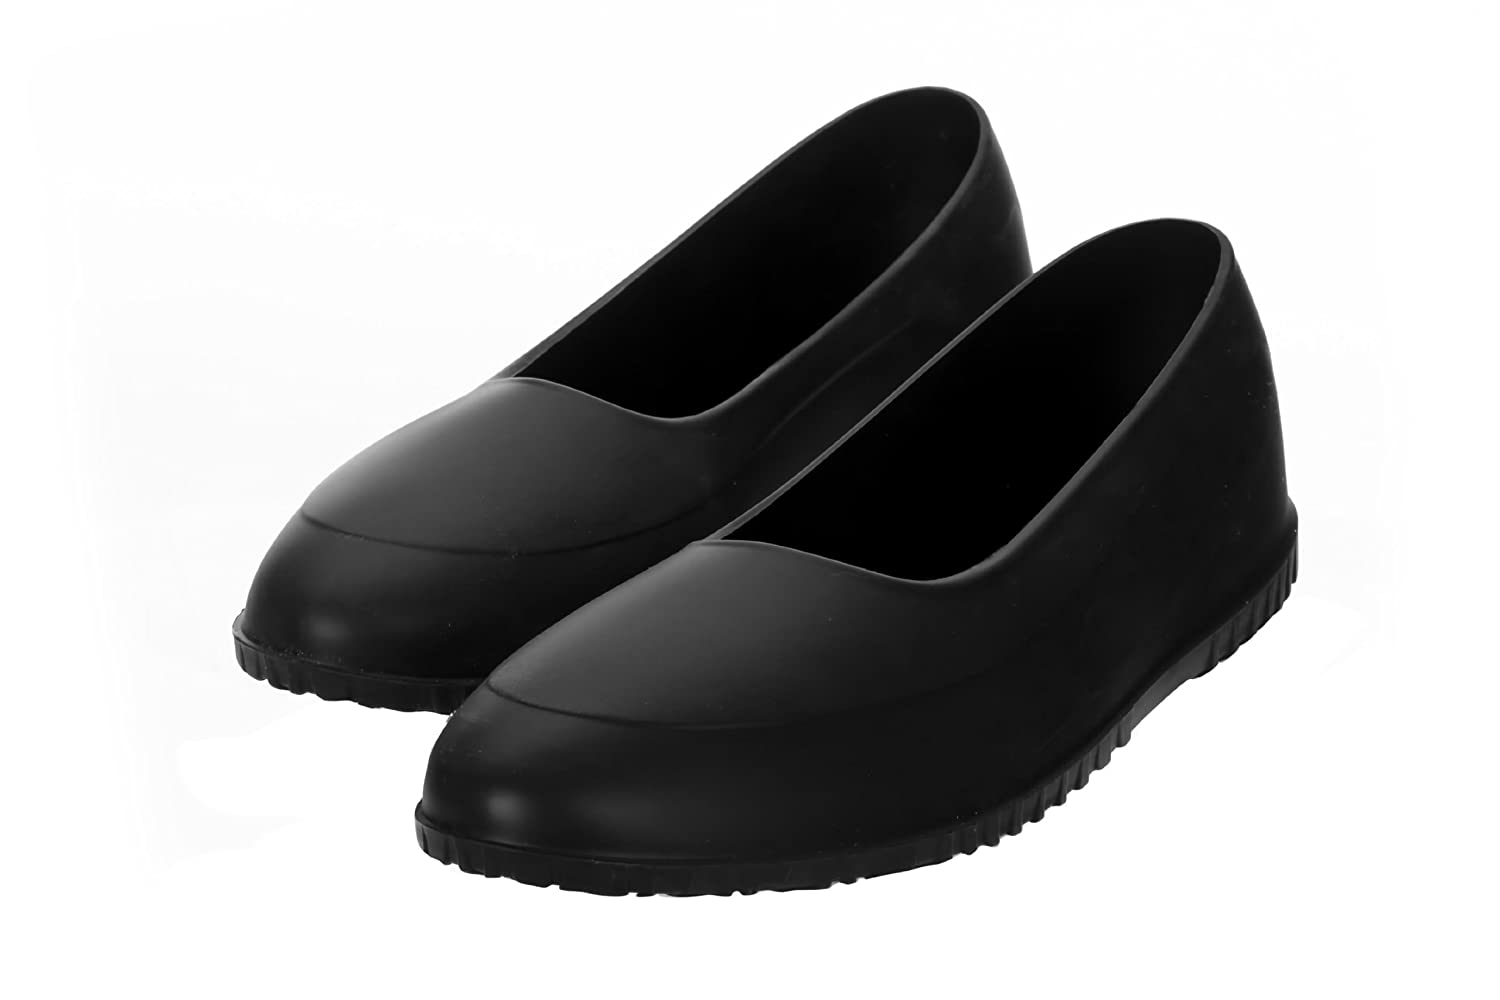 Unisex Galosh Overshoes for shoe protection